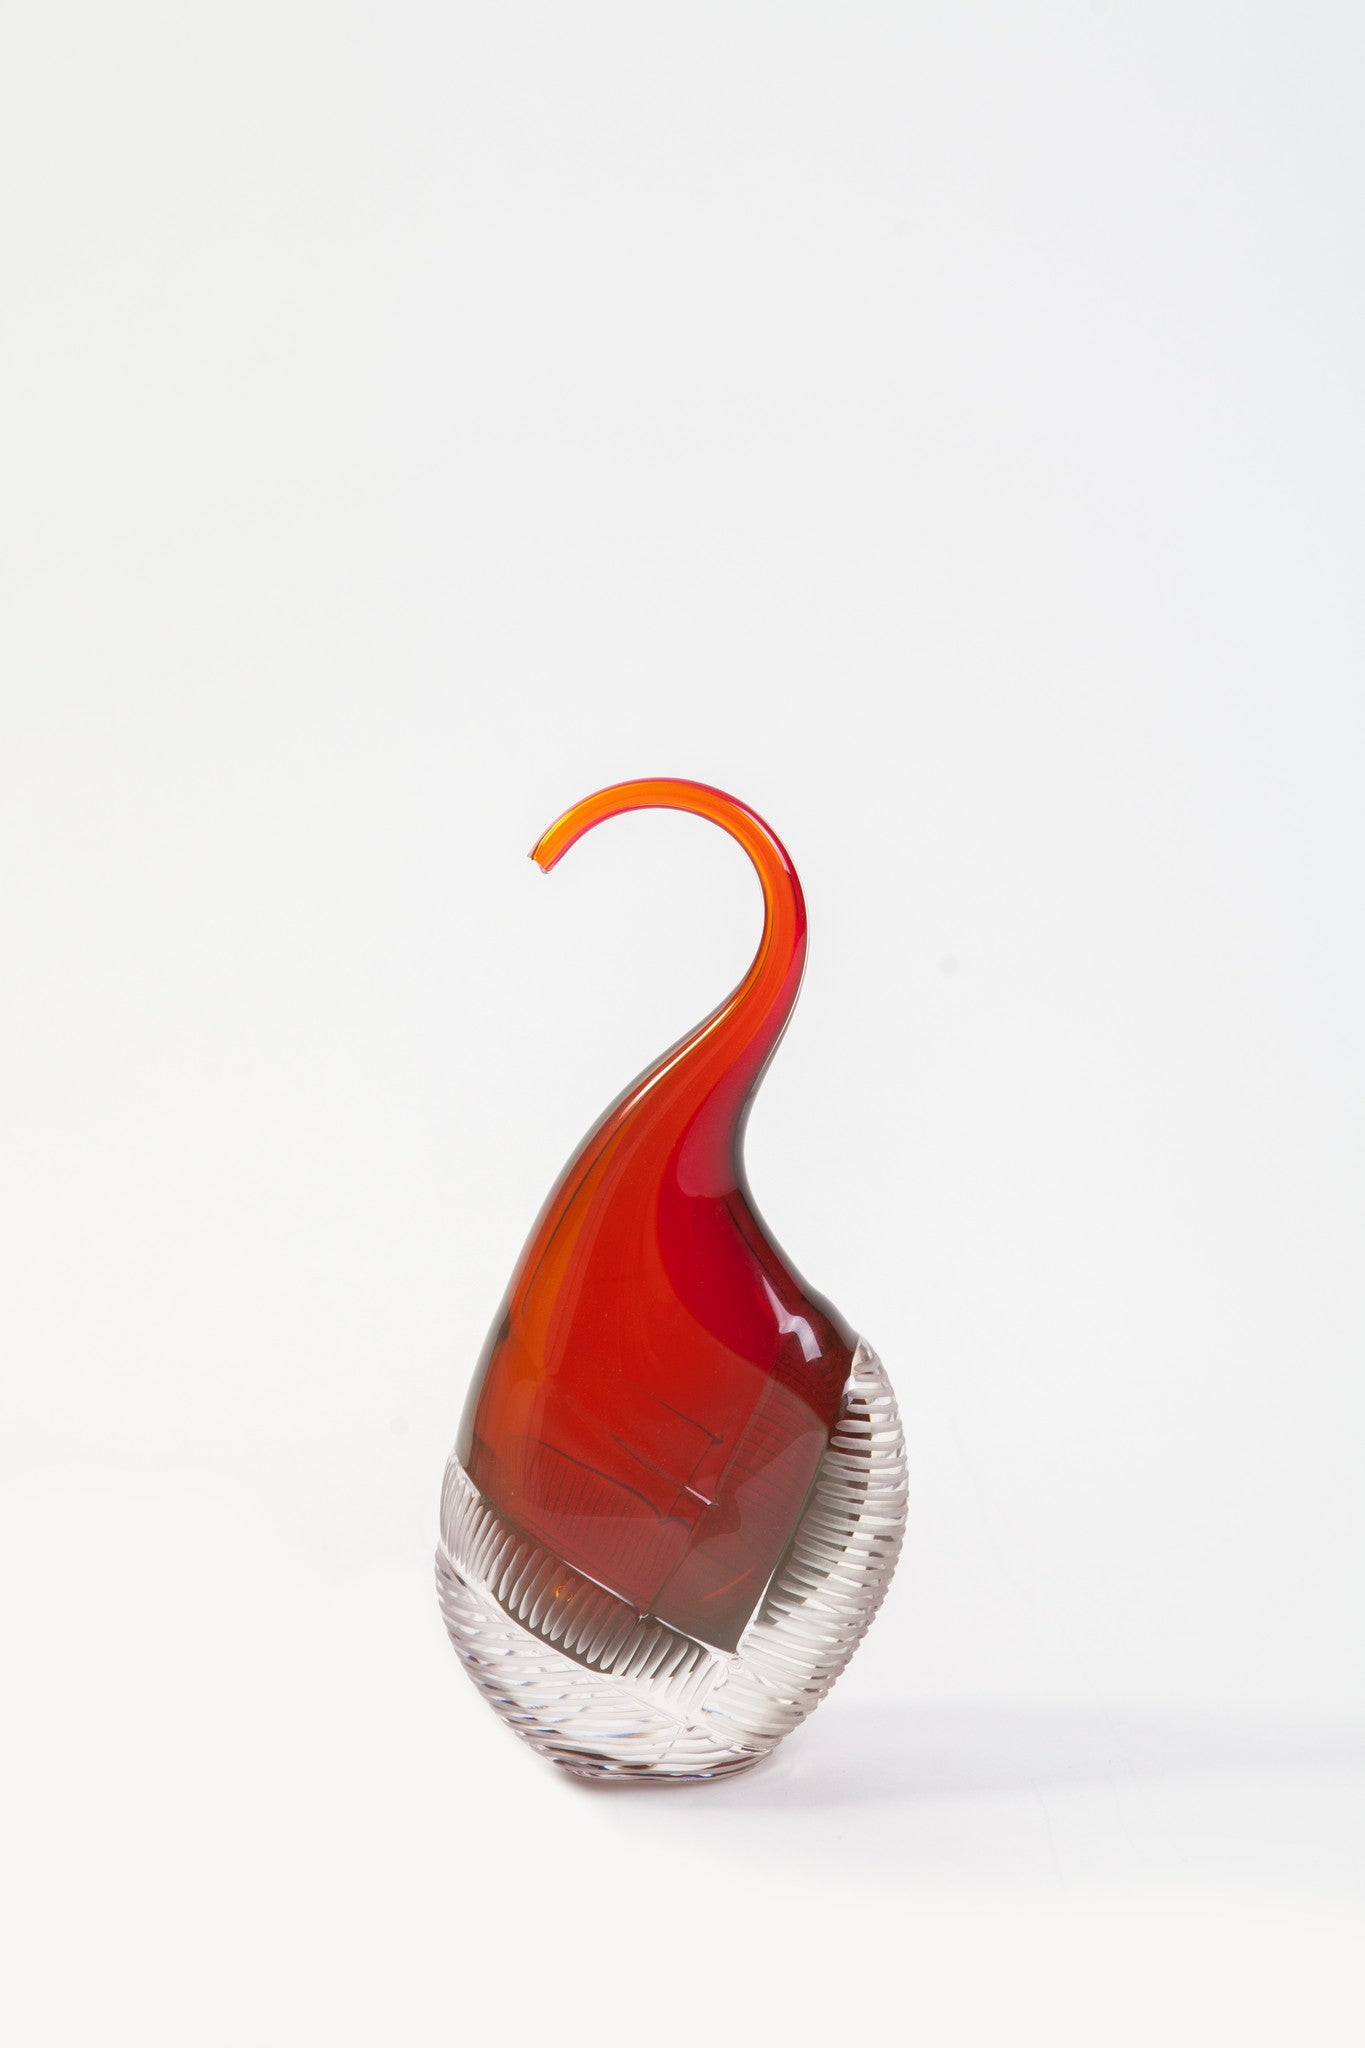 Brien Strancar Dipped and Cut Red Wiggler Glass Sculpture (2013)